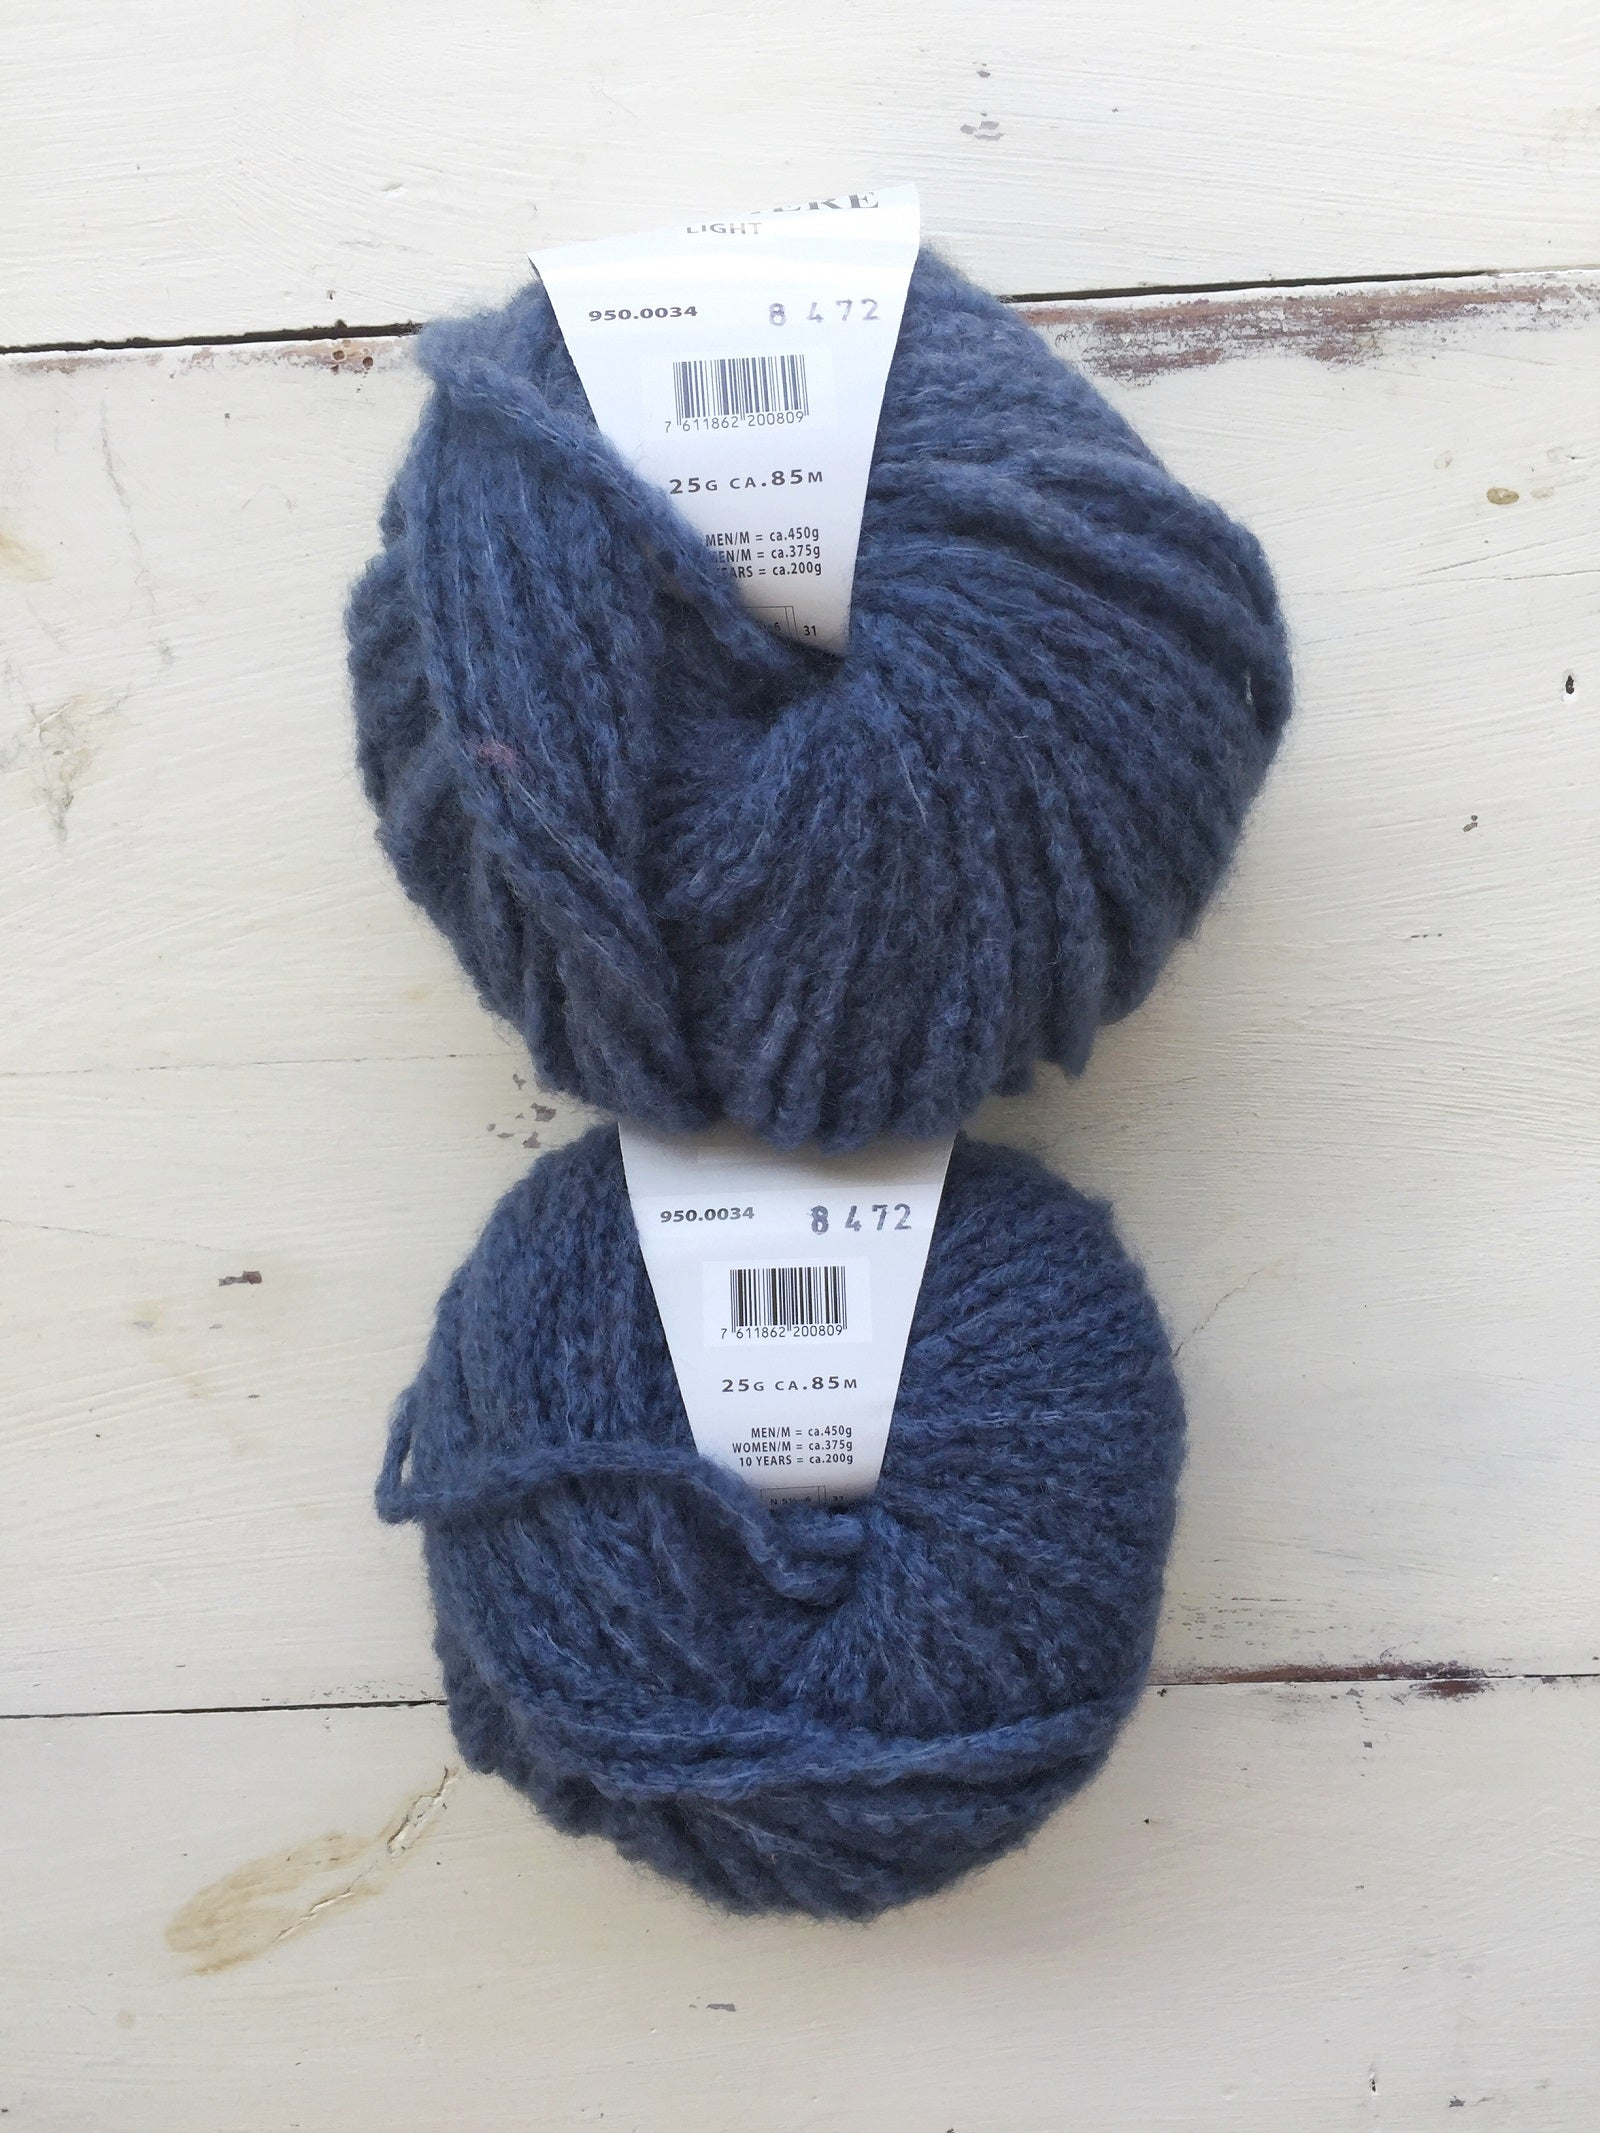 Lace and Cable Cashmere Light Hat Kit